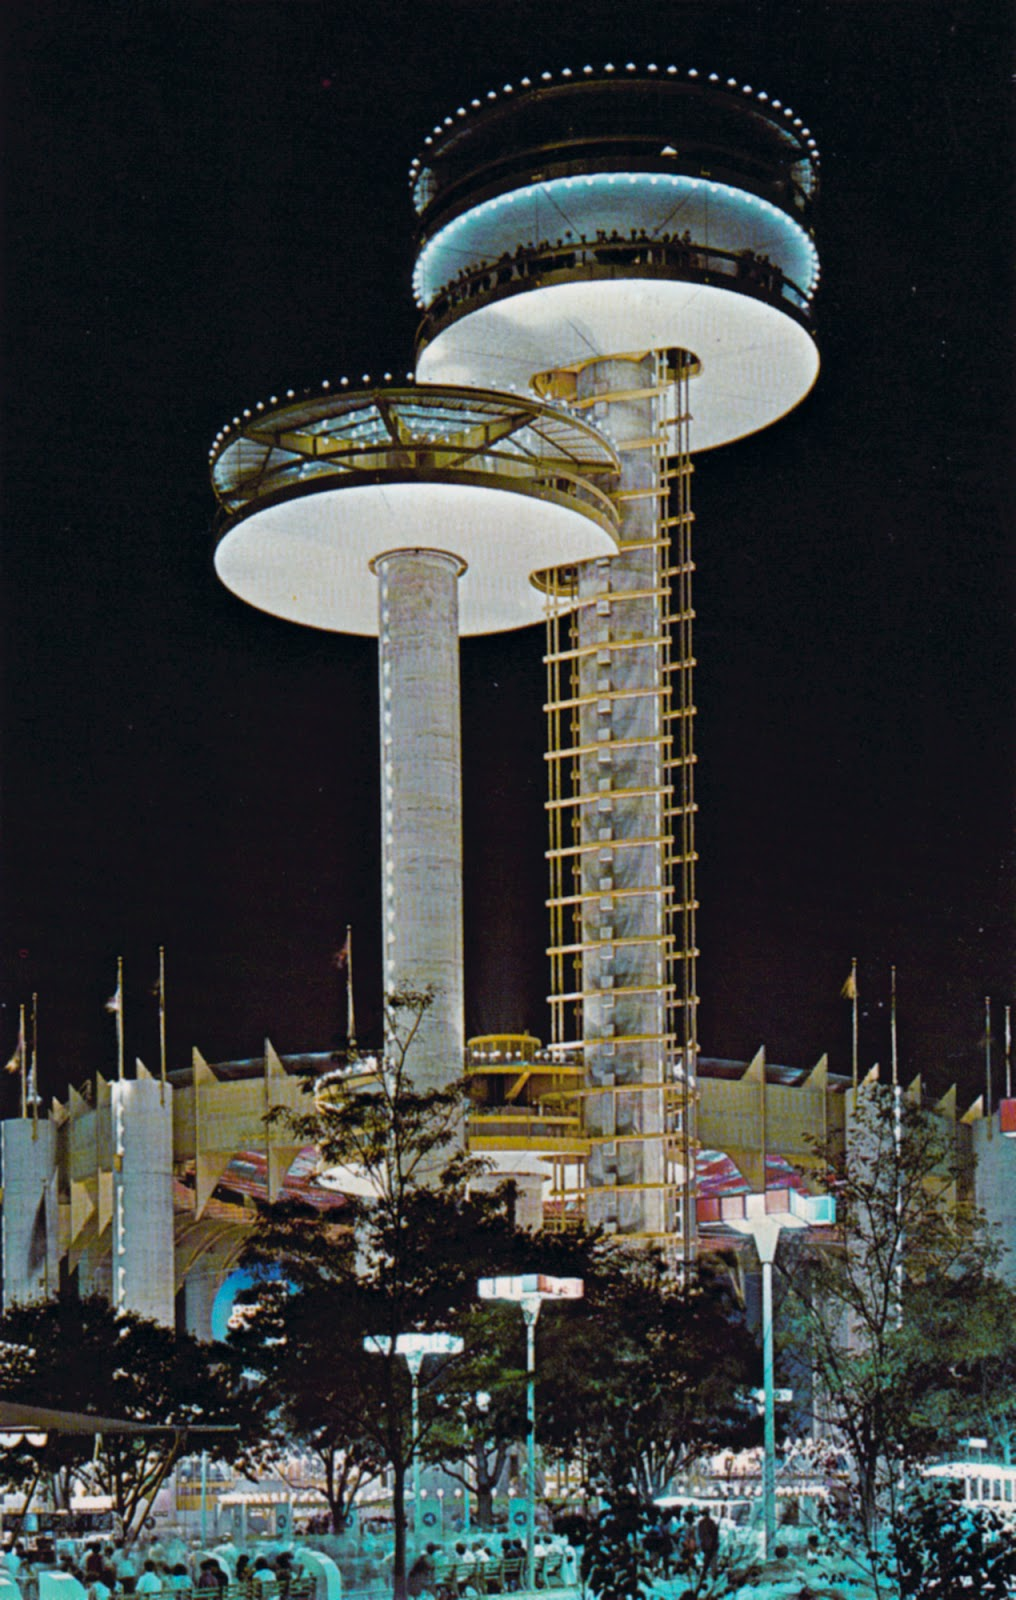 World S Most Beautiful: The Trek Collective: Drex Files: New York World's Fair In